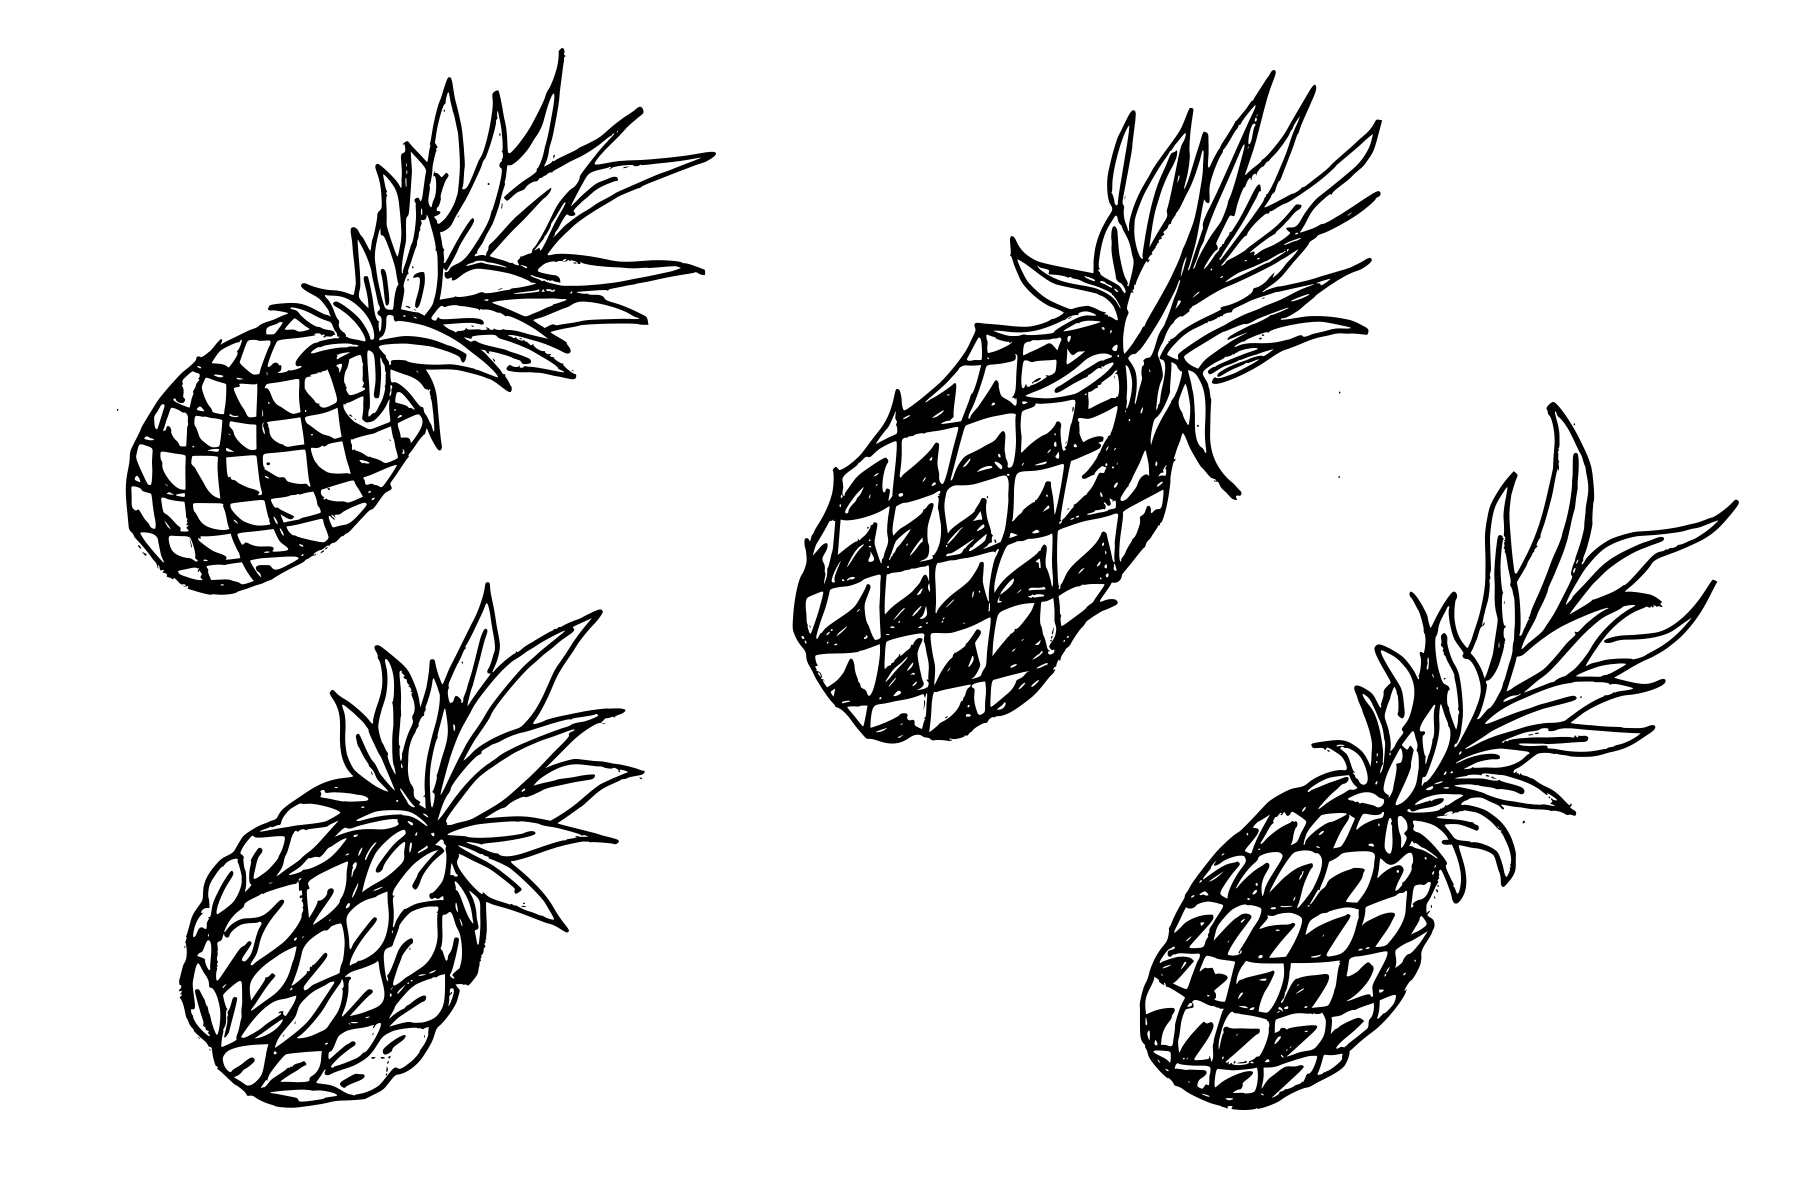 pineapple drawing 4 pineapple drawing png transparent onlygfxcom drawing pineapple 1 1